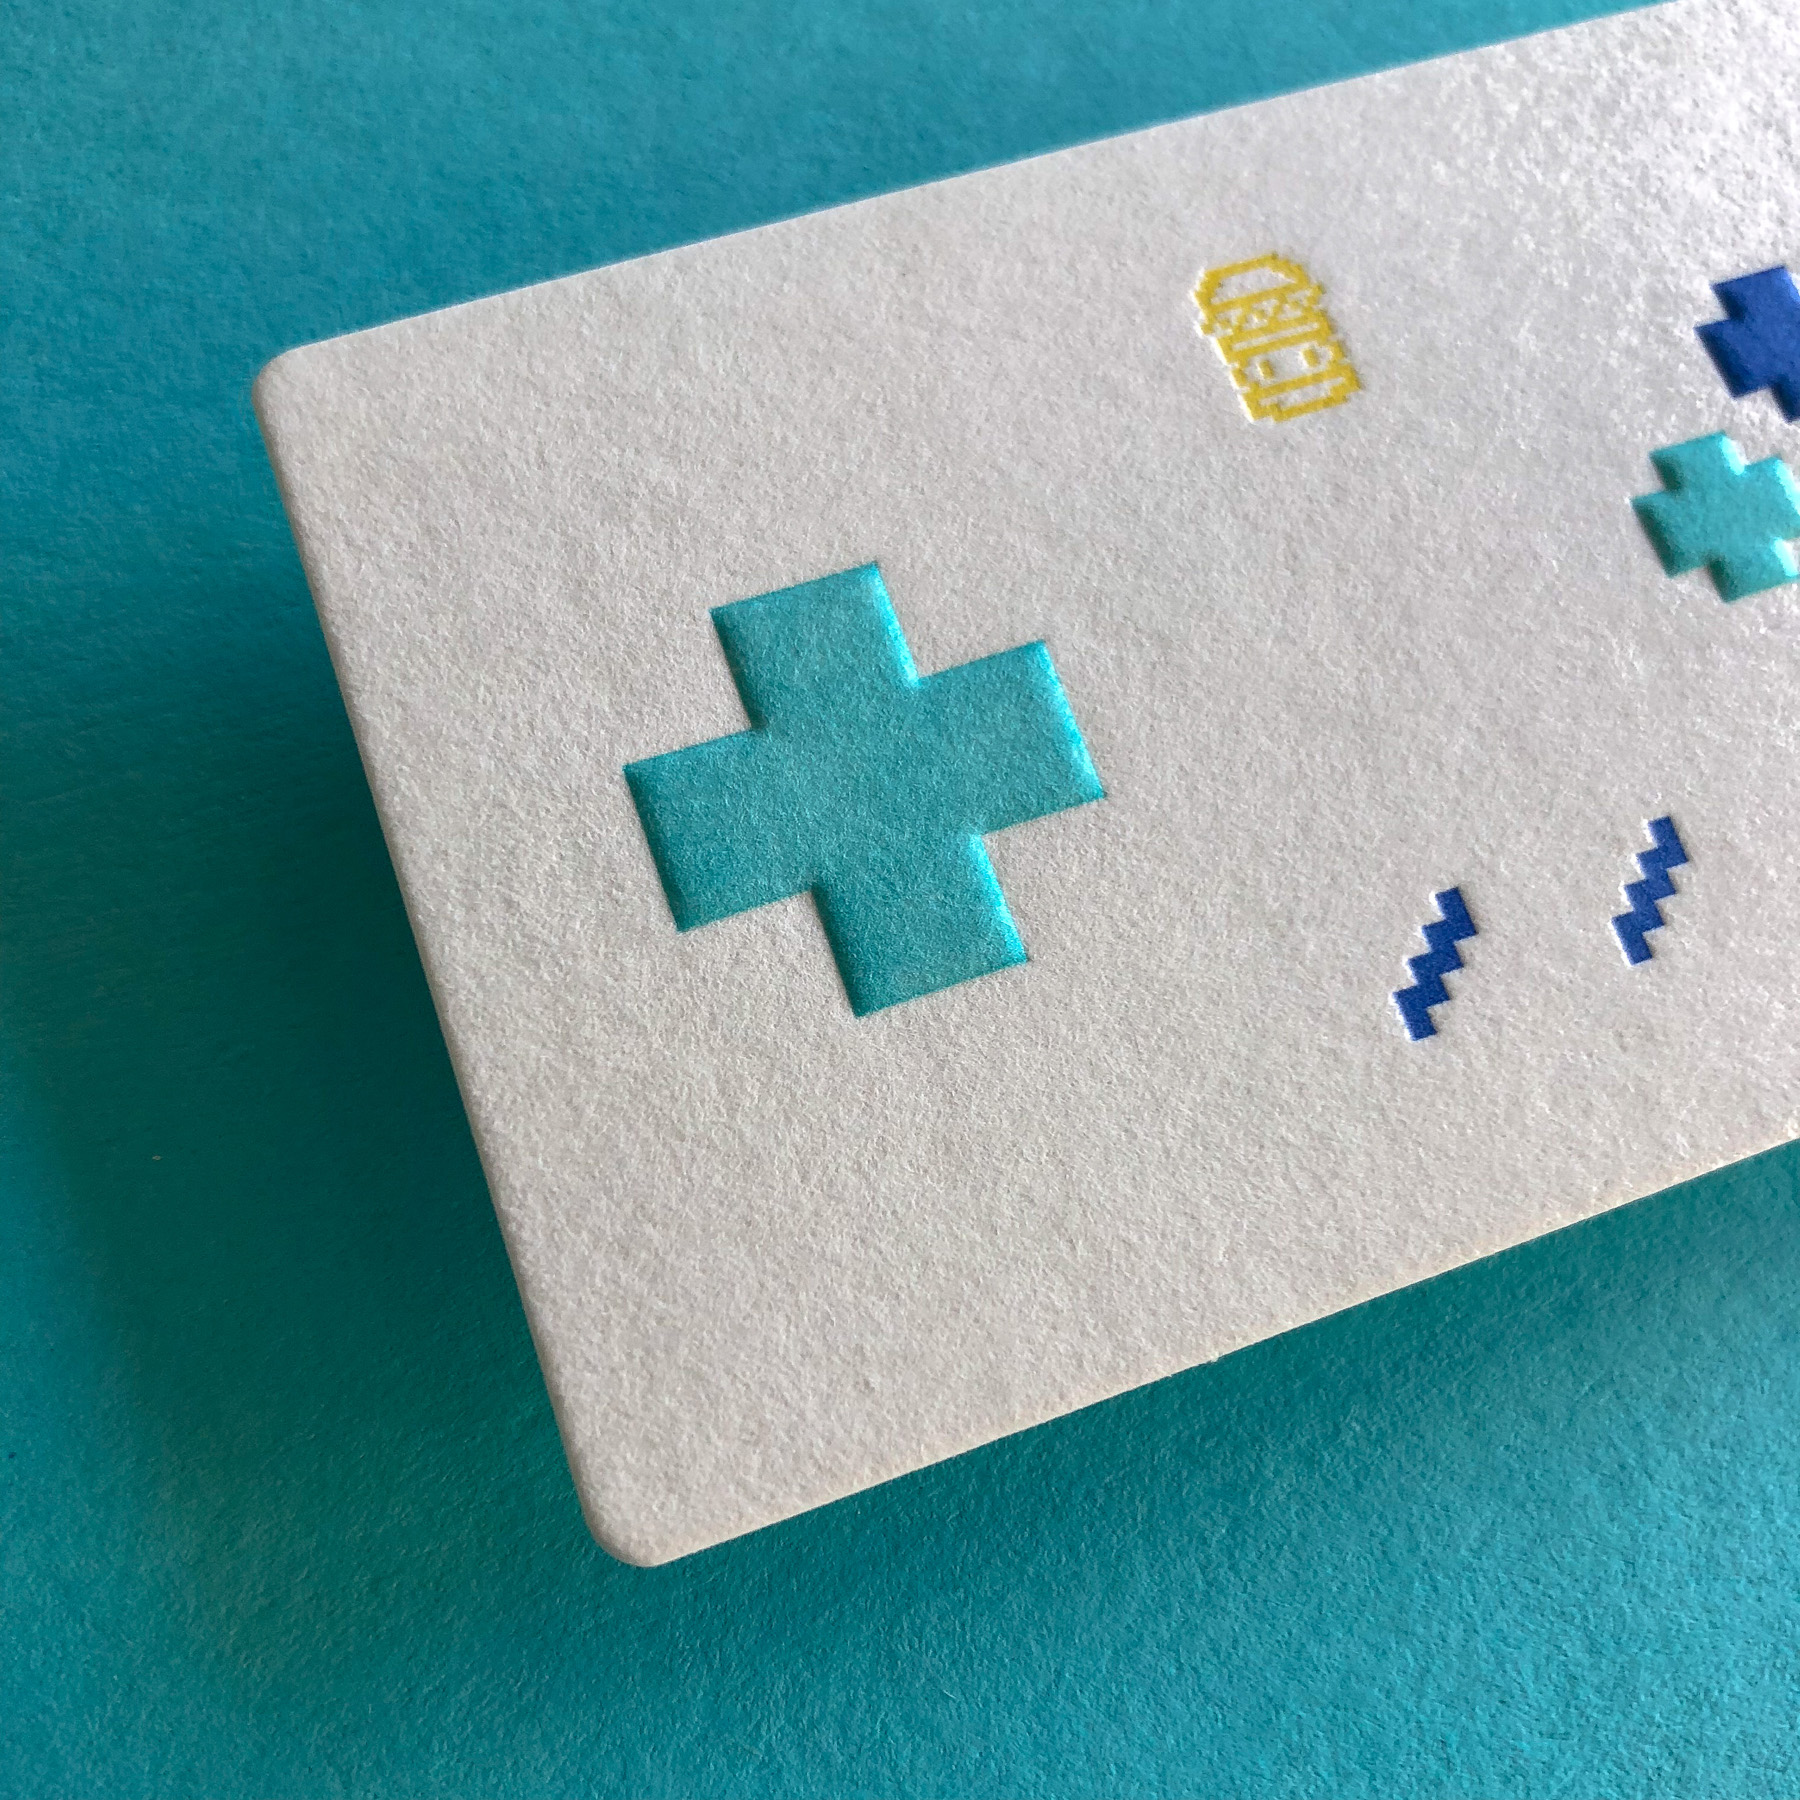 Unique letterpress embossed business cards for 8 Bit Burger on Wild 2